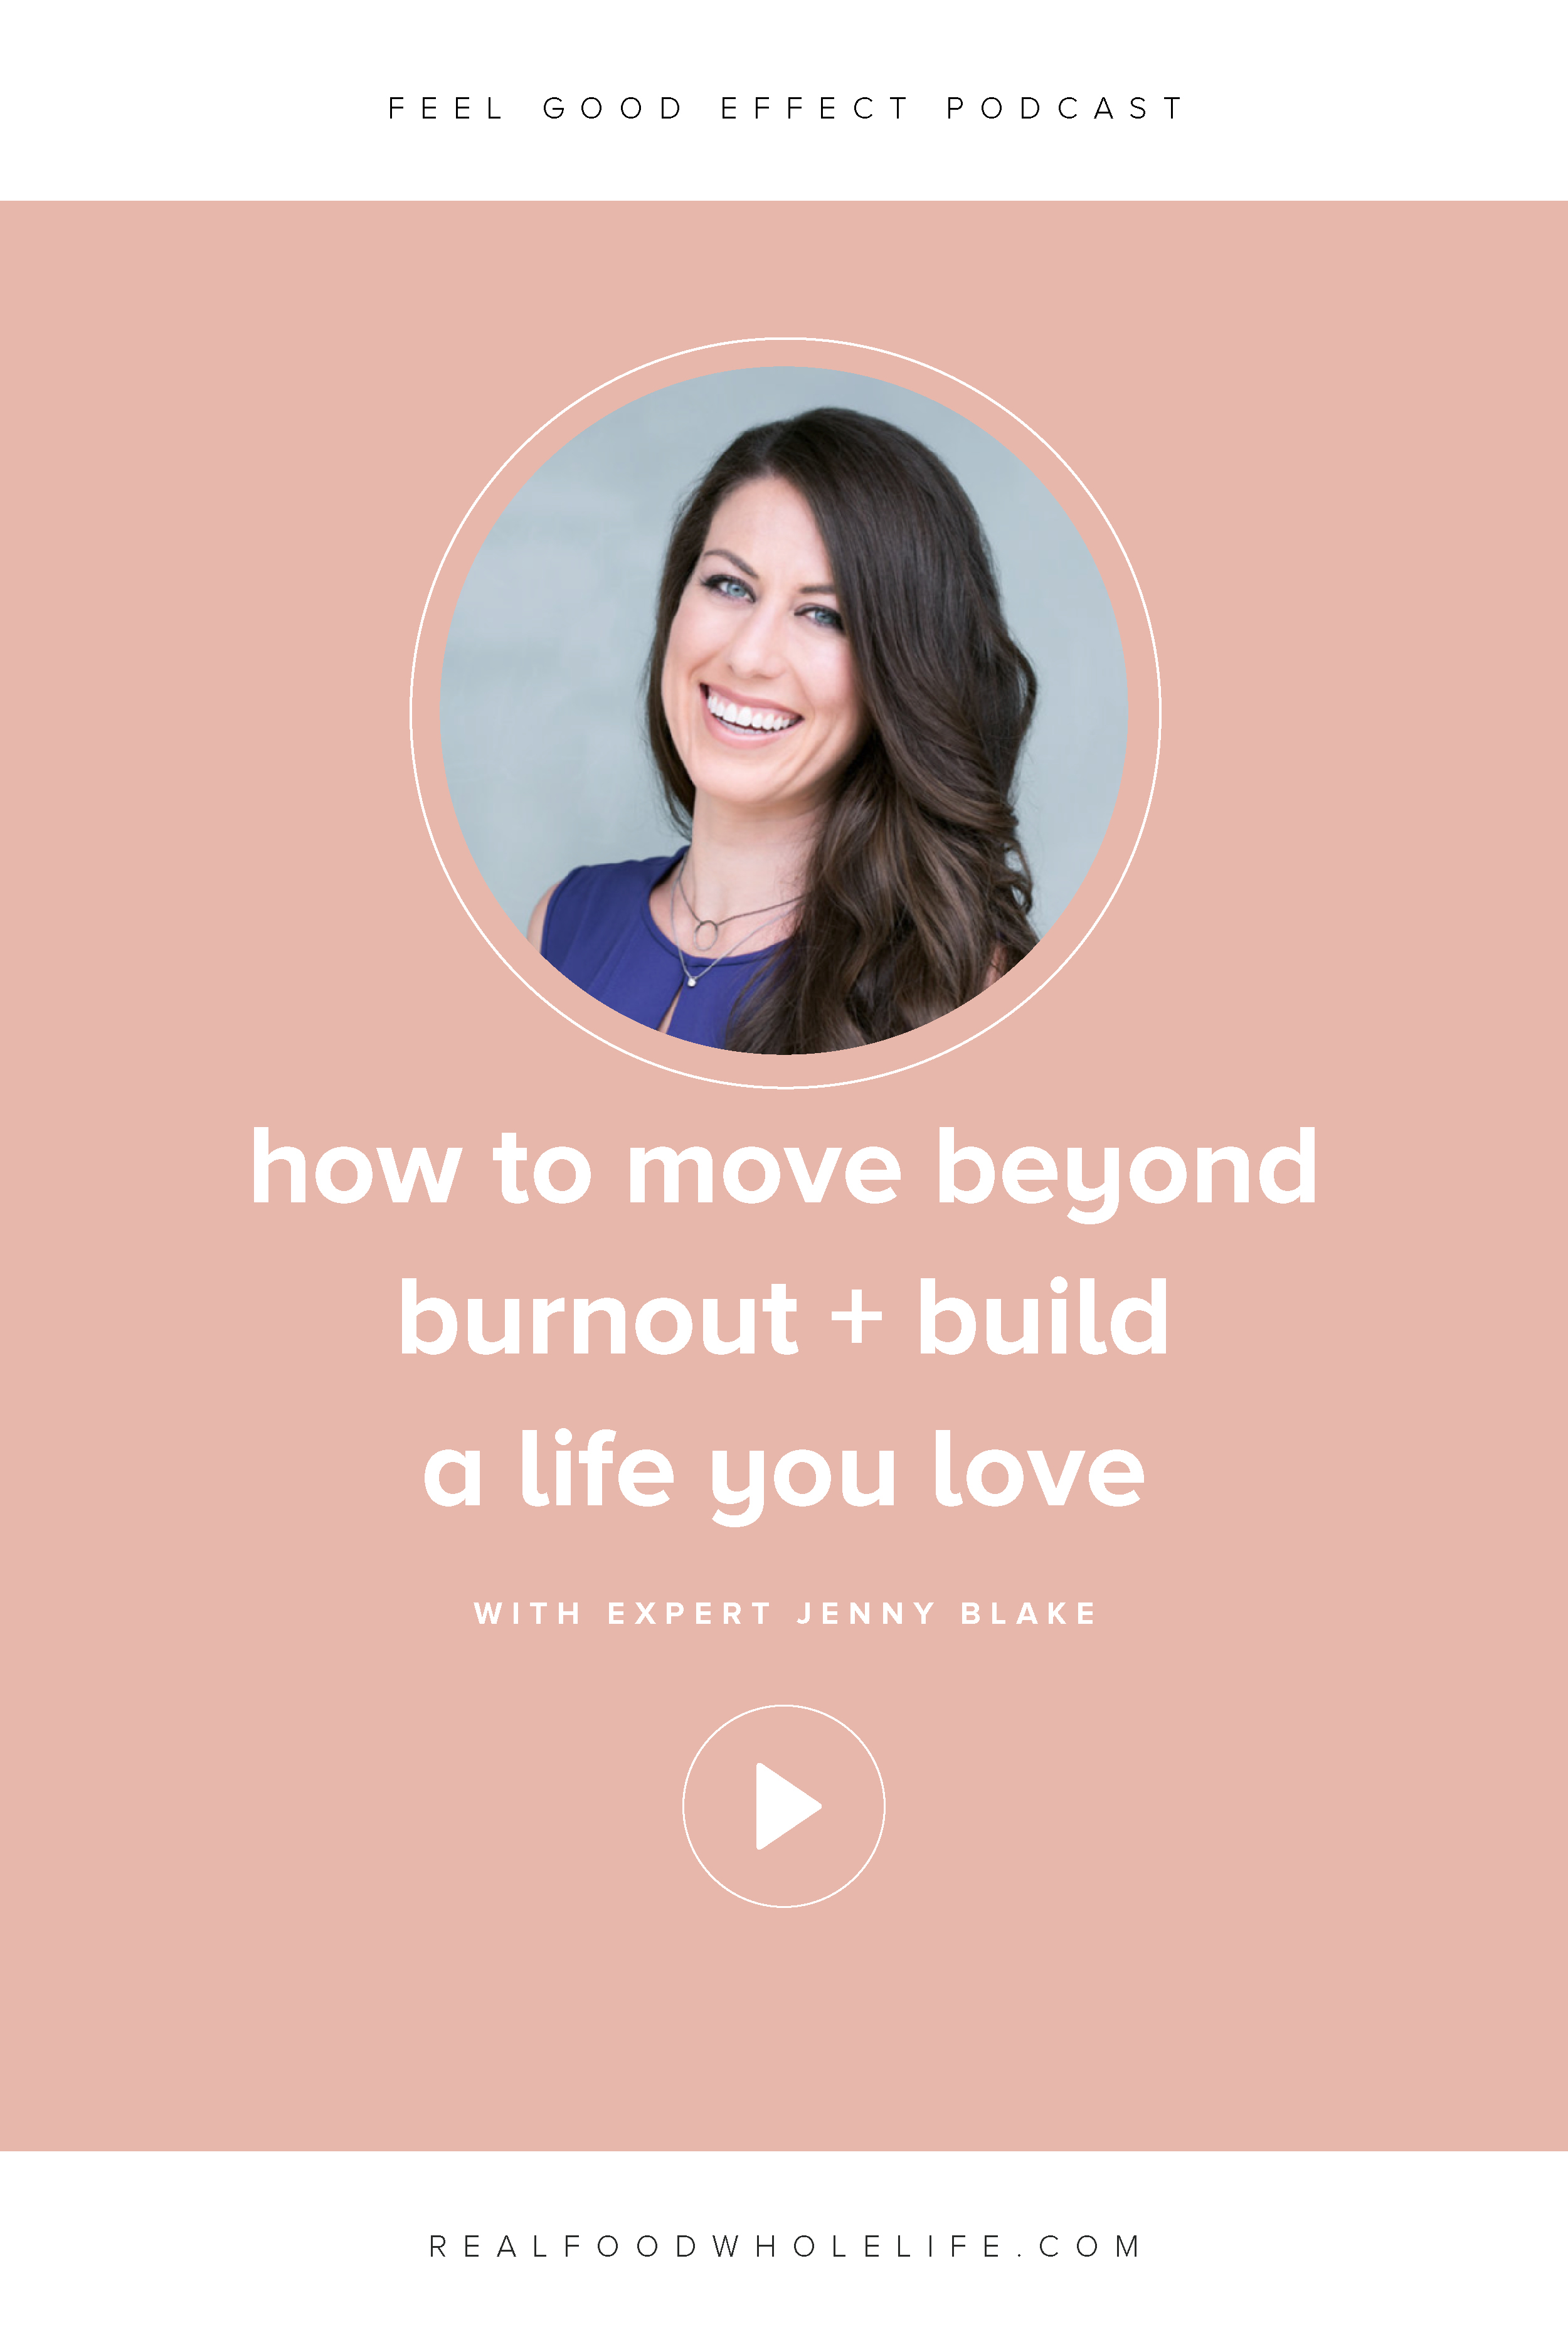 Jenny Blake on the Feel Good Effect Podcast: How to Move Beyond Burnout + Build a Life You Love